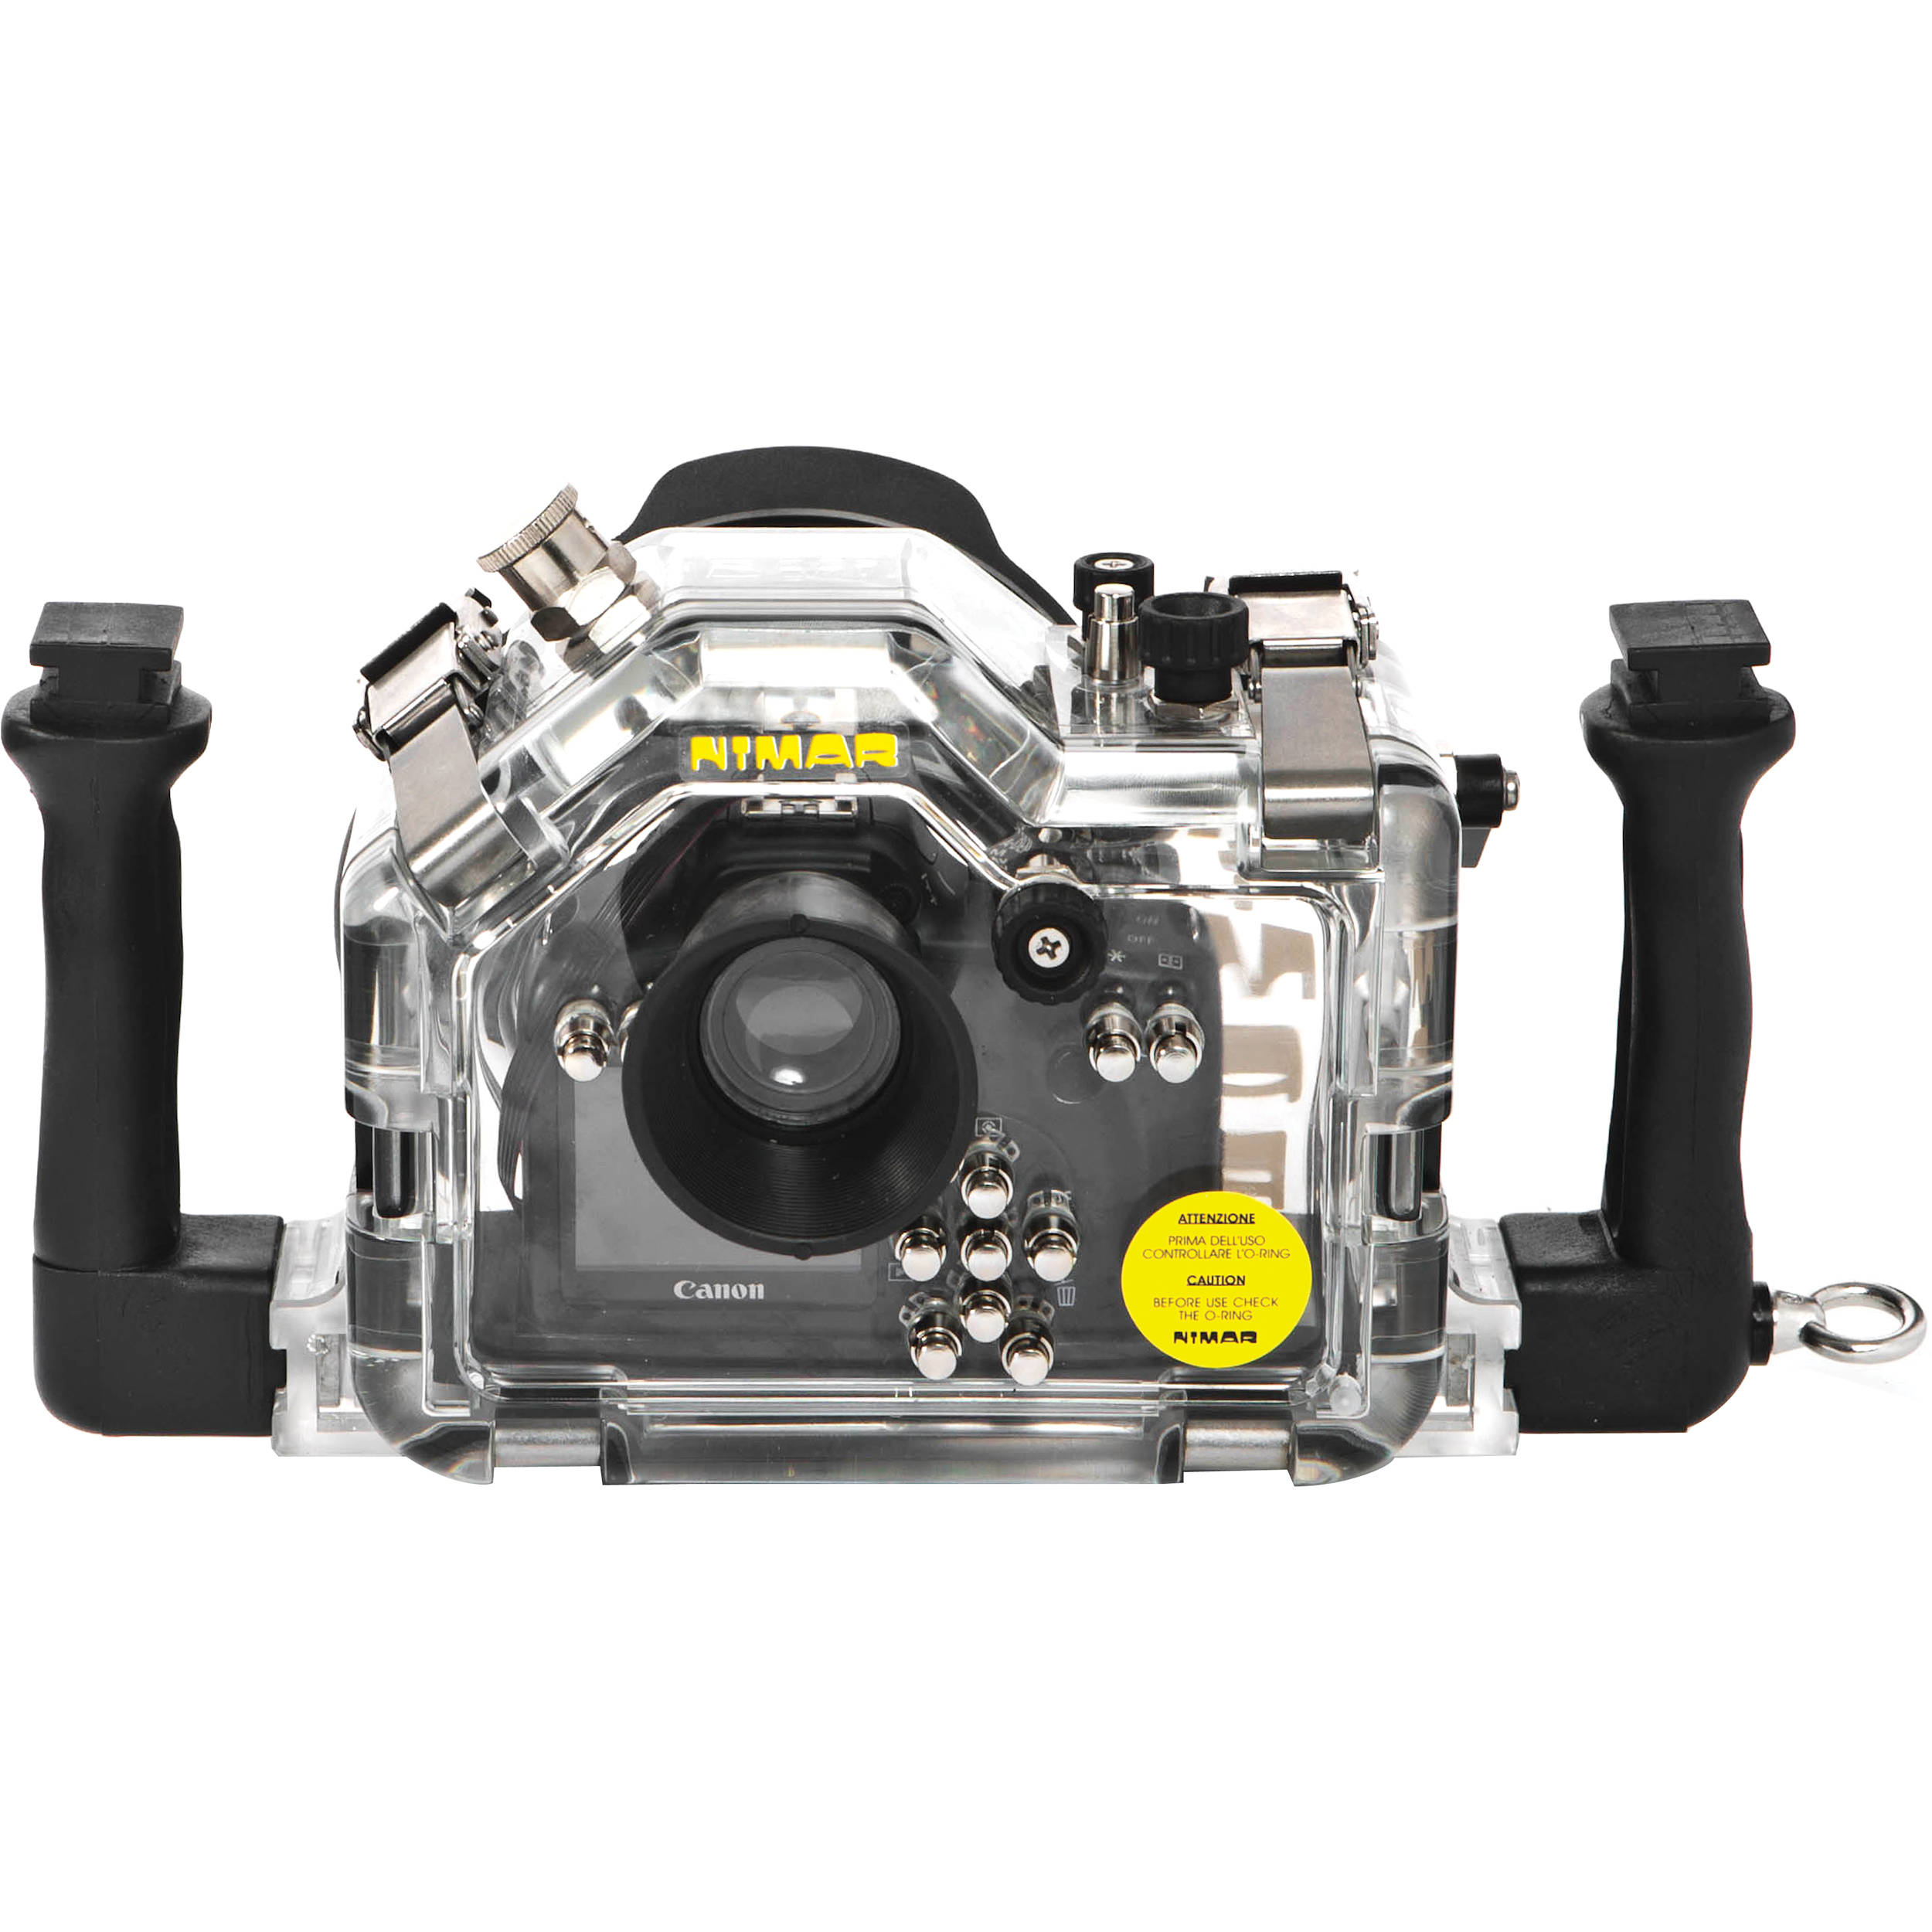 Camera Dslr Camera Without Lens nimar underwater housing for canon eos 1100d dslr camera ni1100d without lens port shown with optional accessories